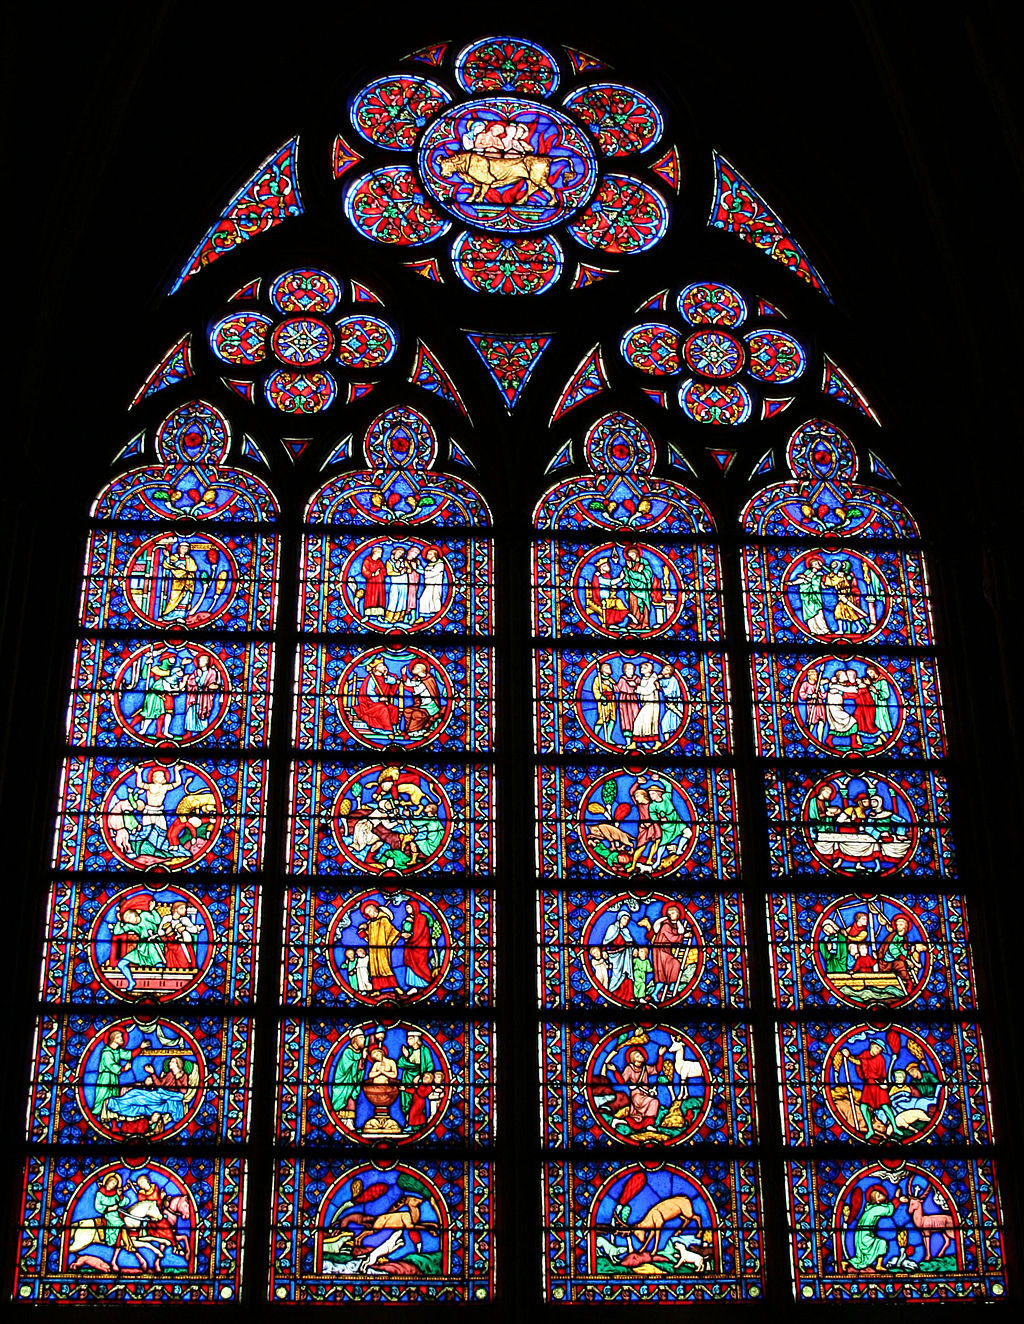 Notre Dame internal stained-glass window